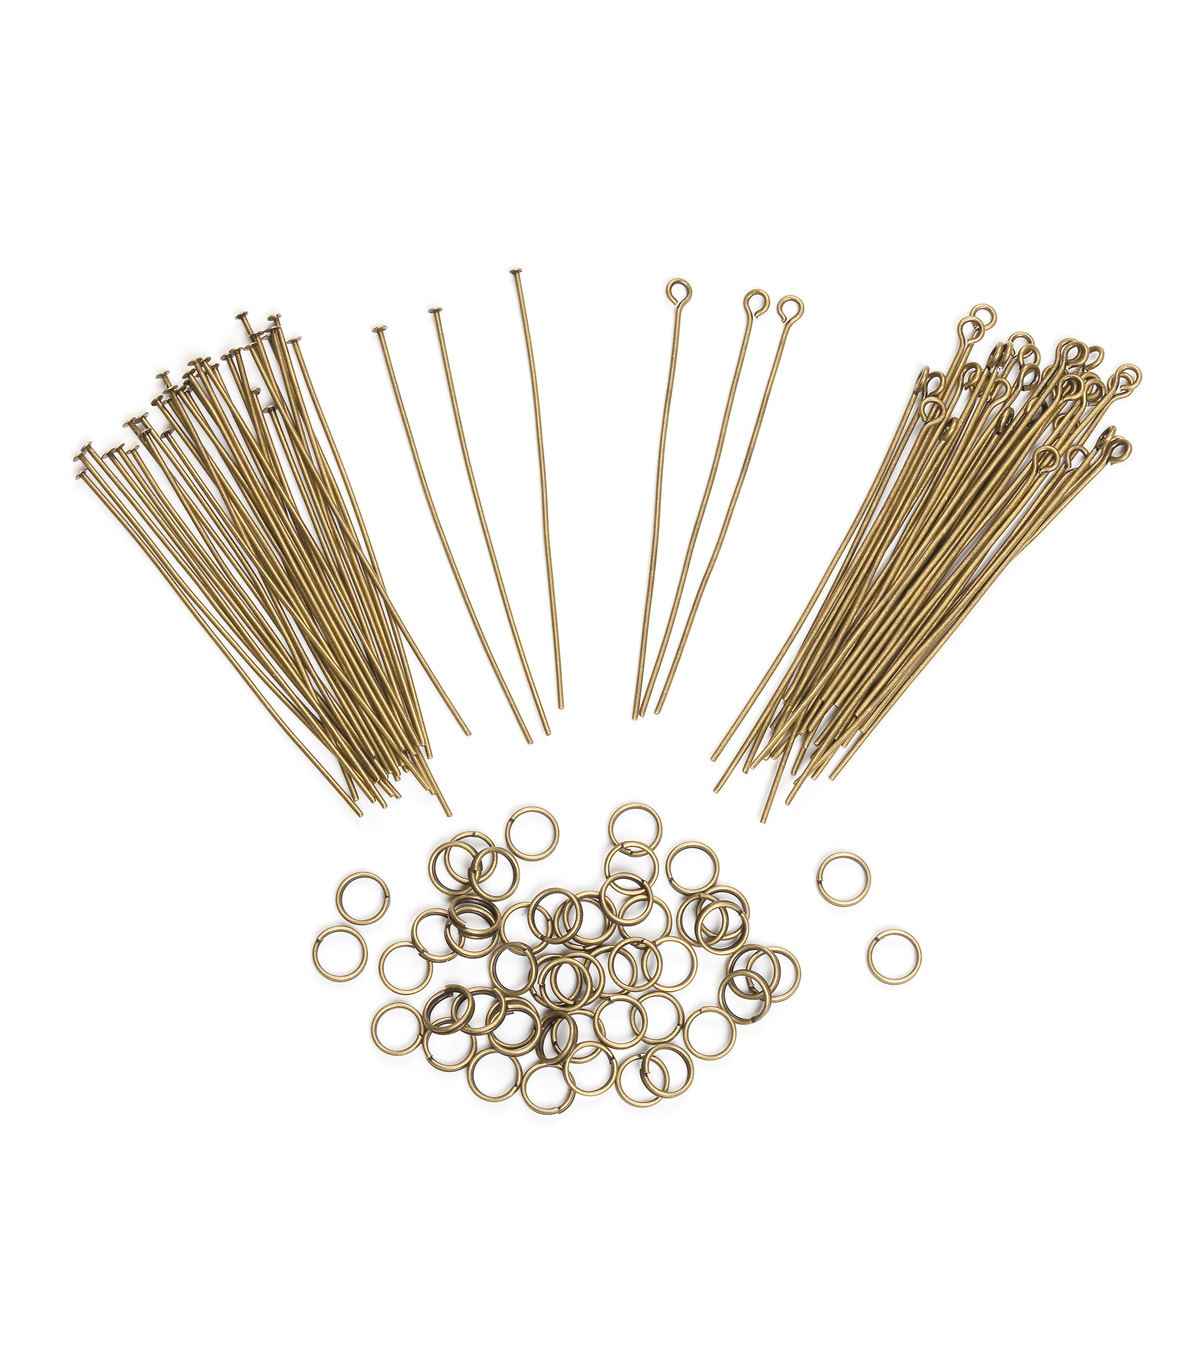 Jewelry Finding Assortment Eye pin/Headpin/Jump Ring, Ant. Brass, 122pc.